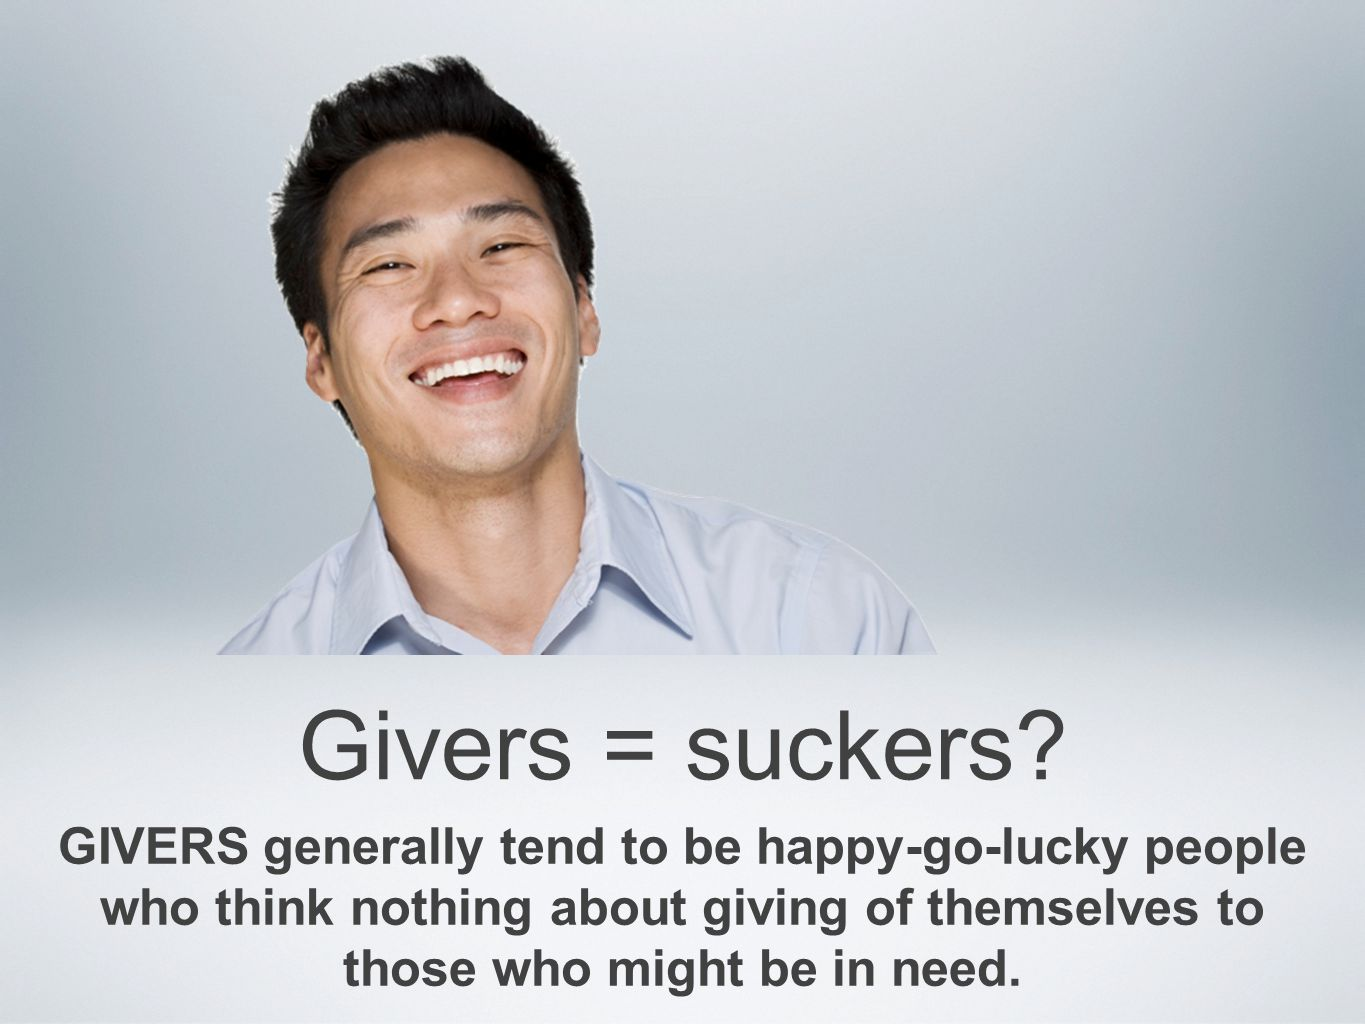 Givers = suckers.